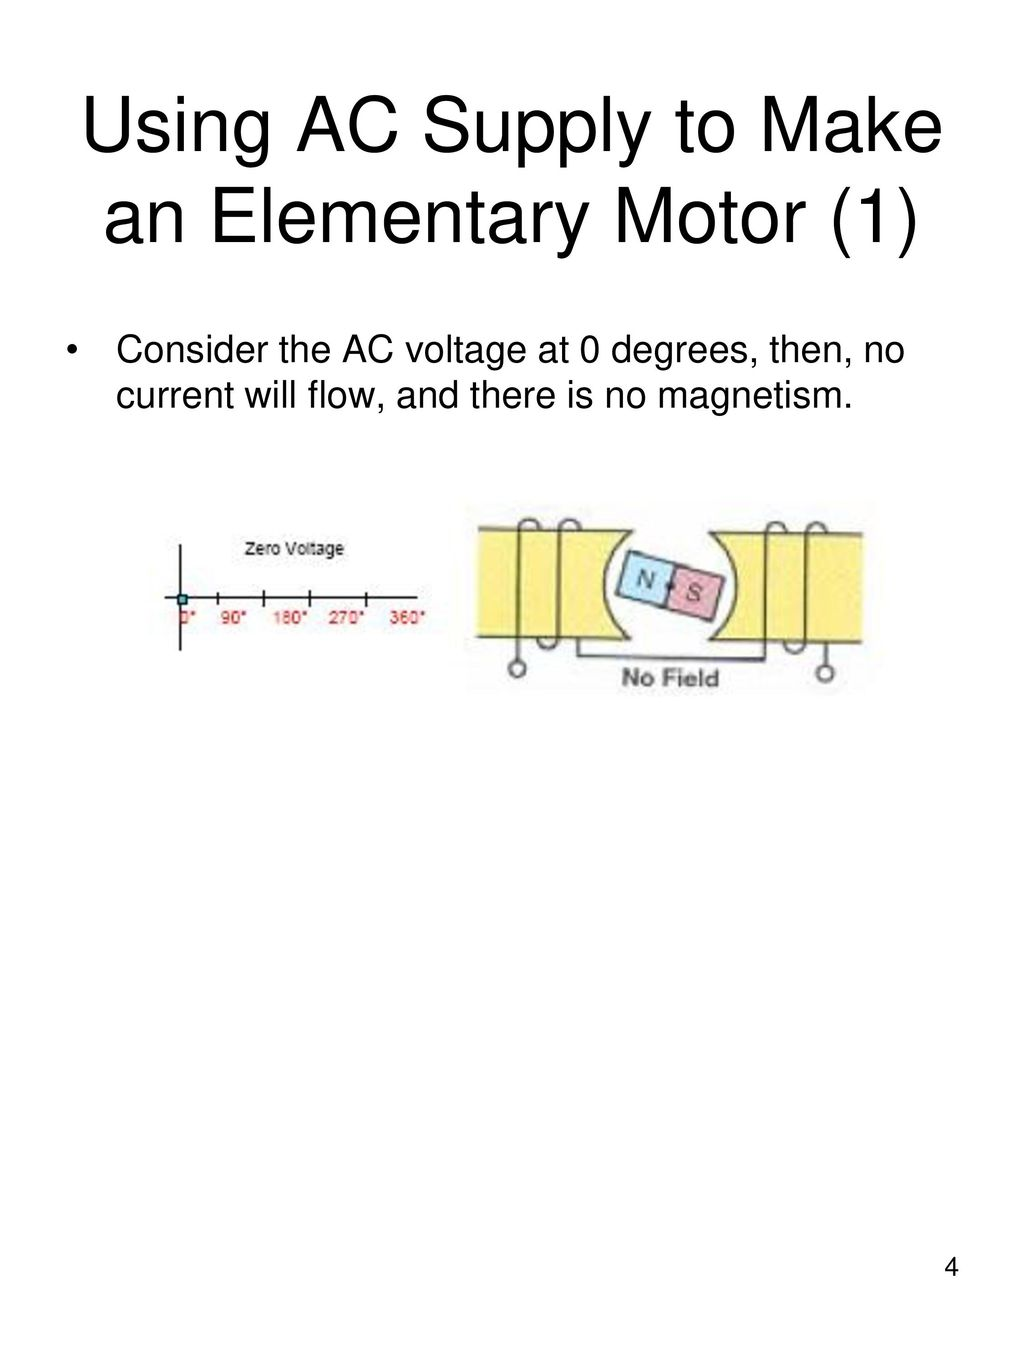 Chapter 13 – AC Motors AC motors convert AC electrical energy to